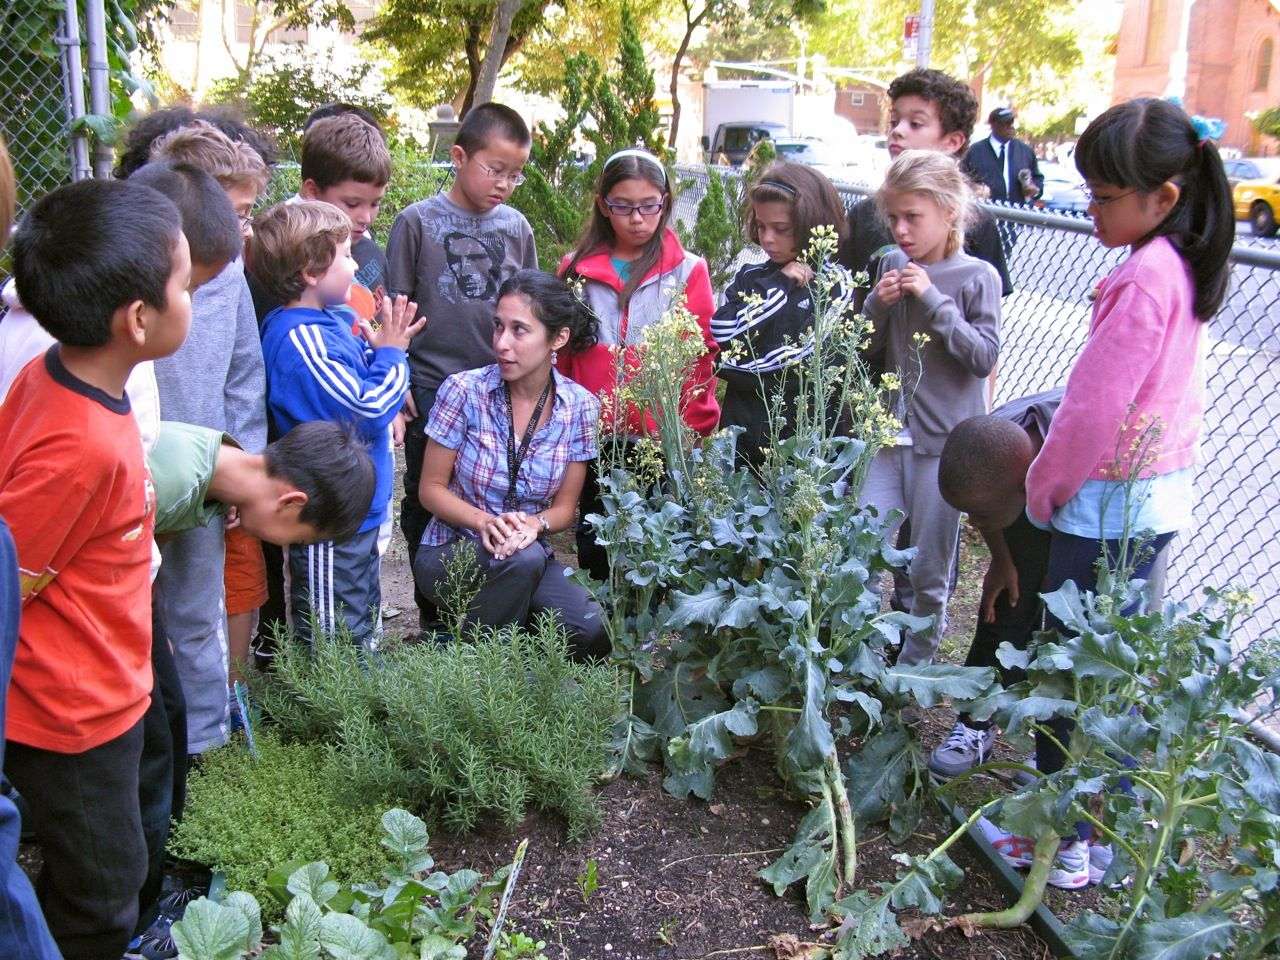 Starting a school garden. // Such a fun and cute way to